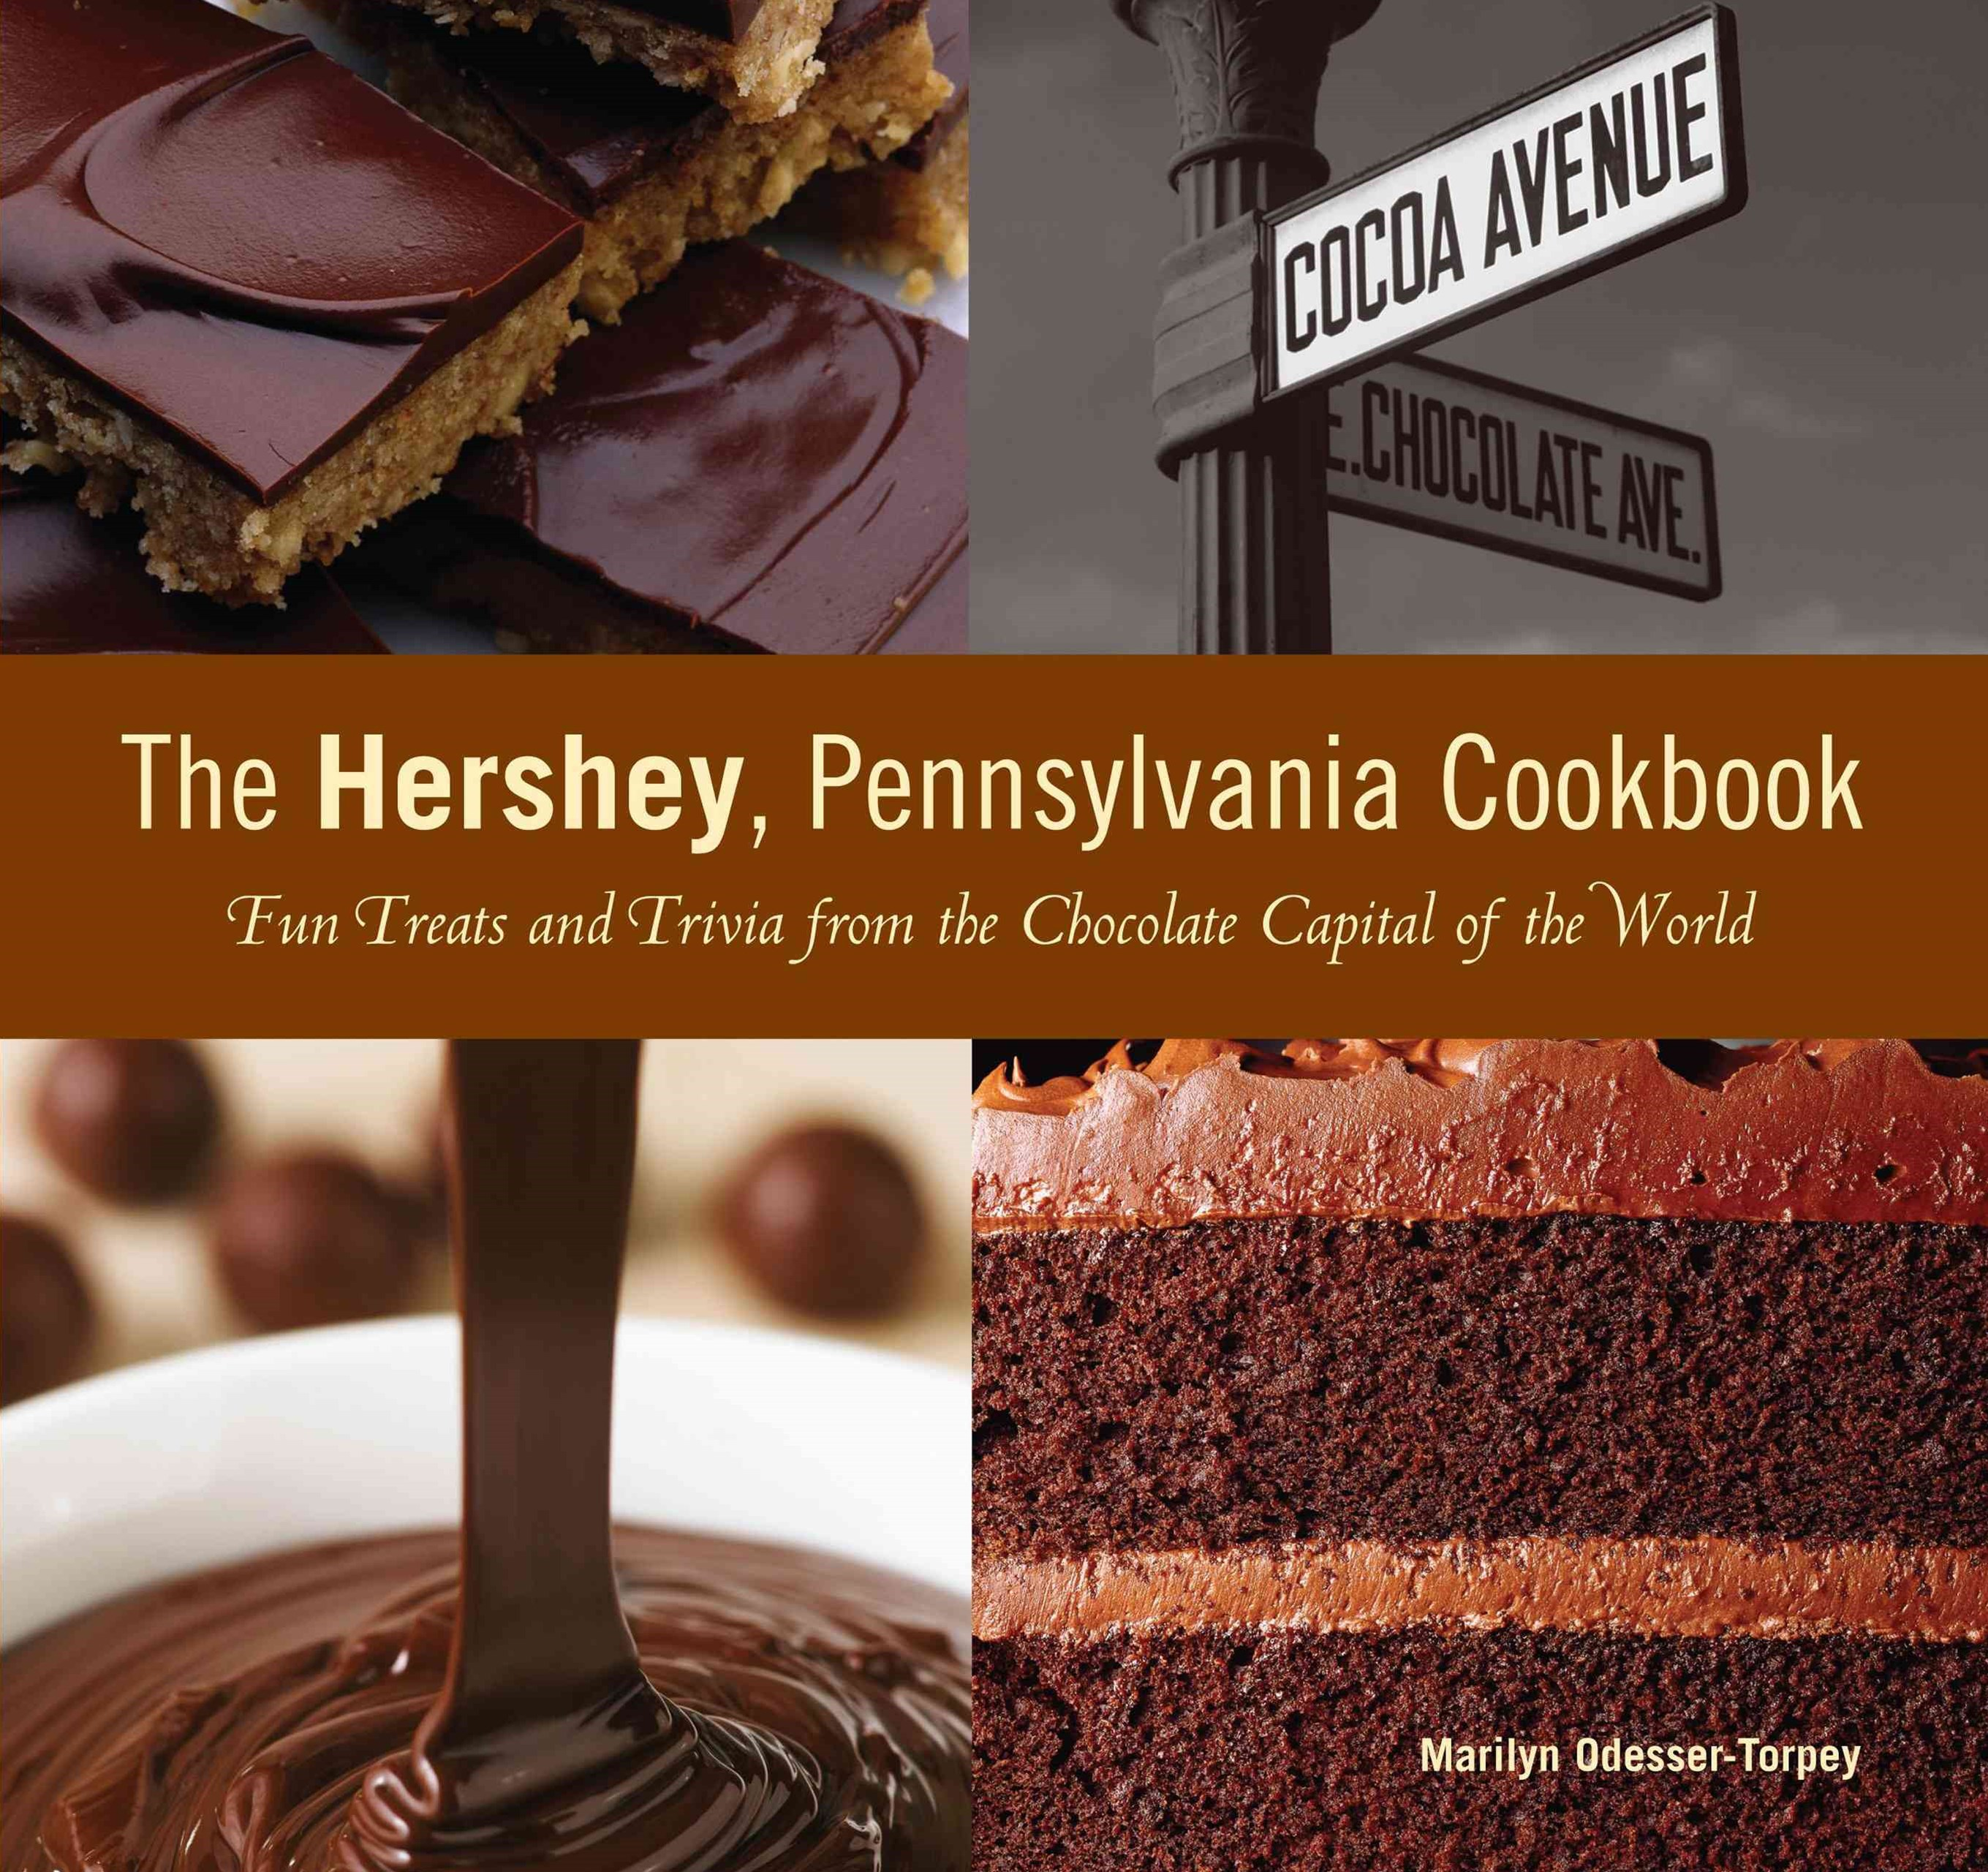 Hershey, Pennsylvania Cookbook